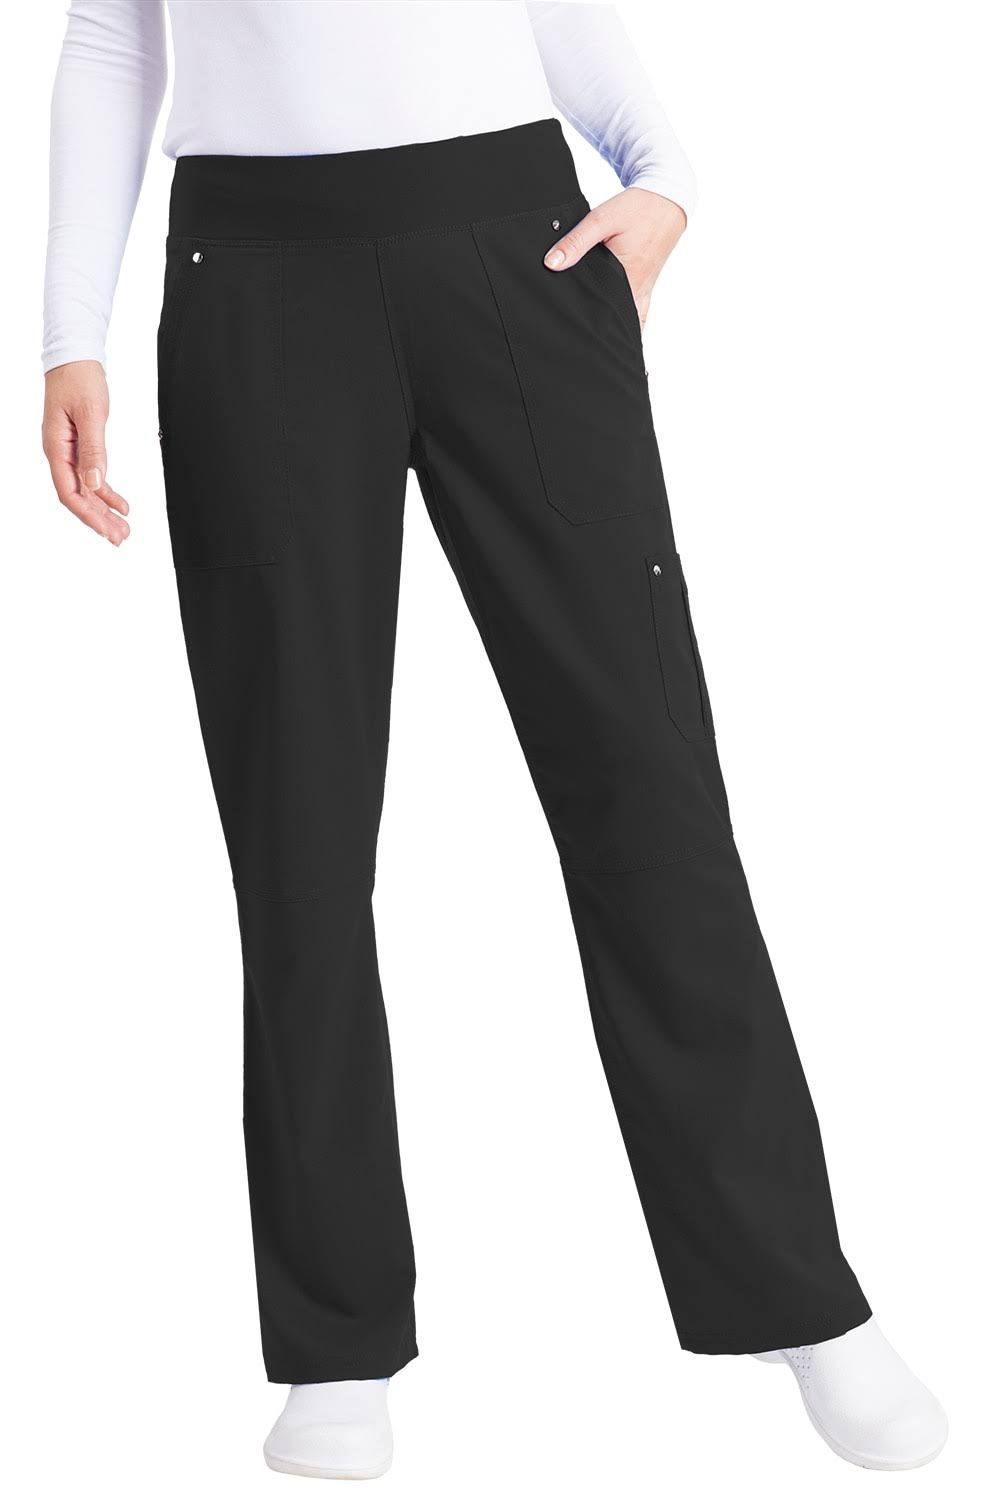 Healing Hands Women's 9133 Tori Pant - Black, Medium